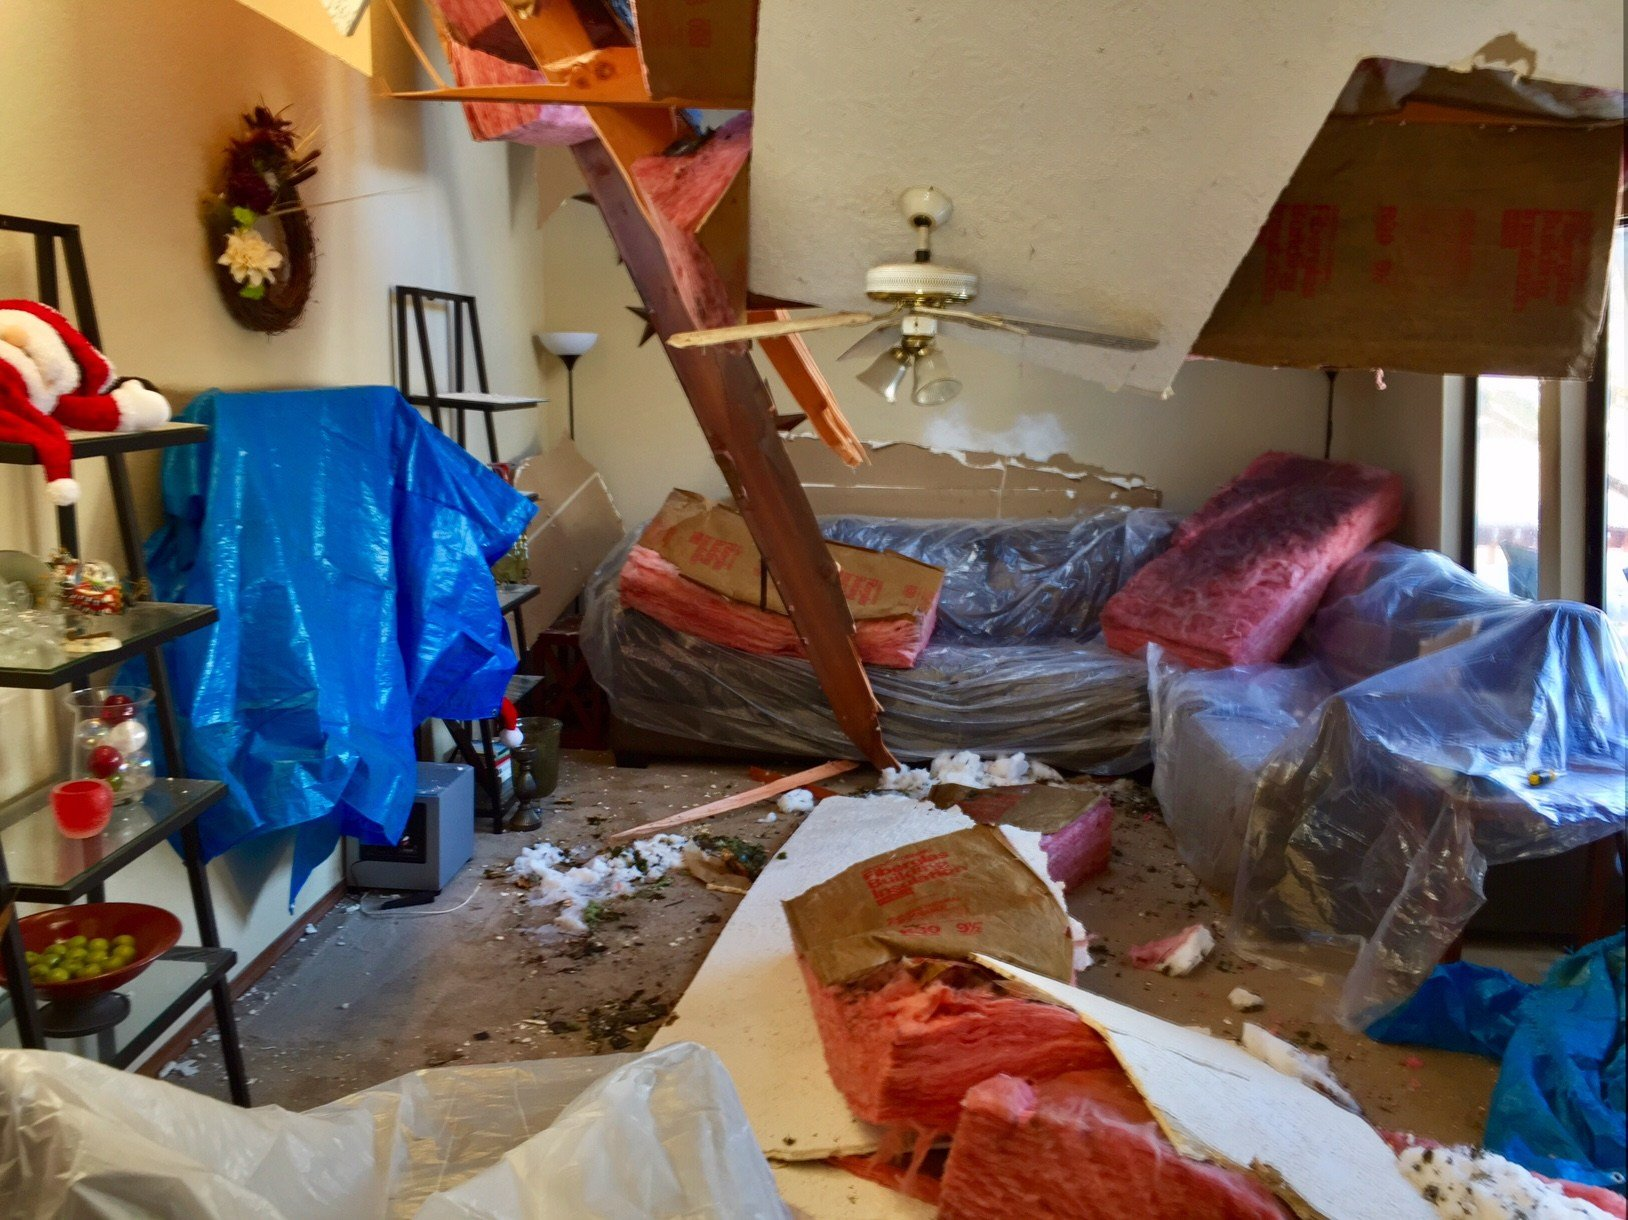 A look at the damage near the couch where the kids were sitting. (KPTV)